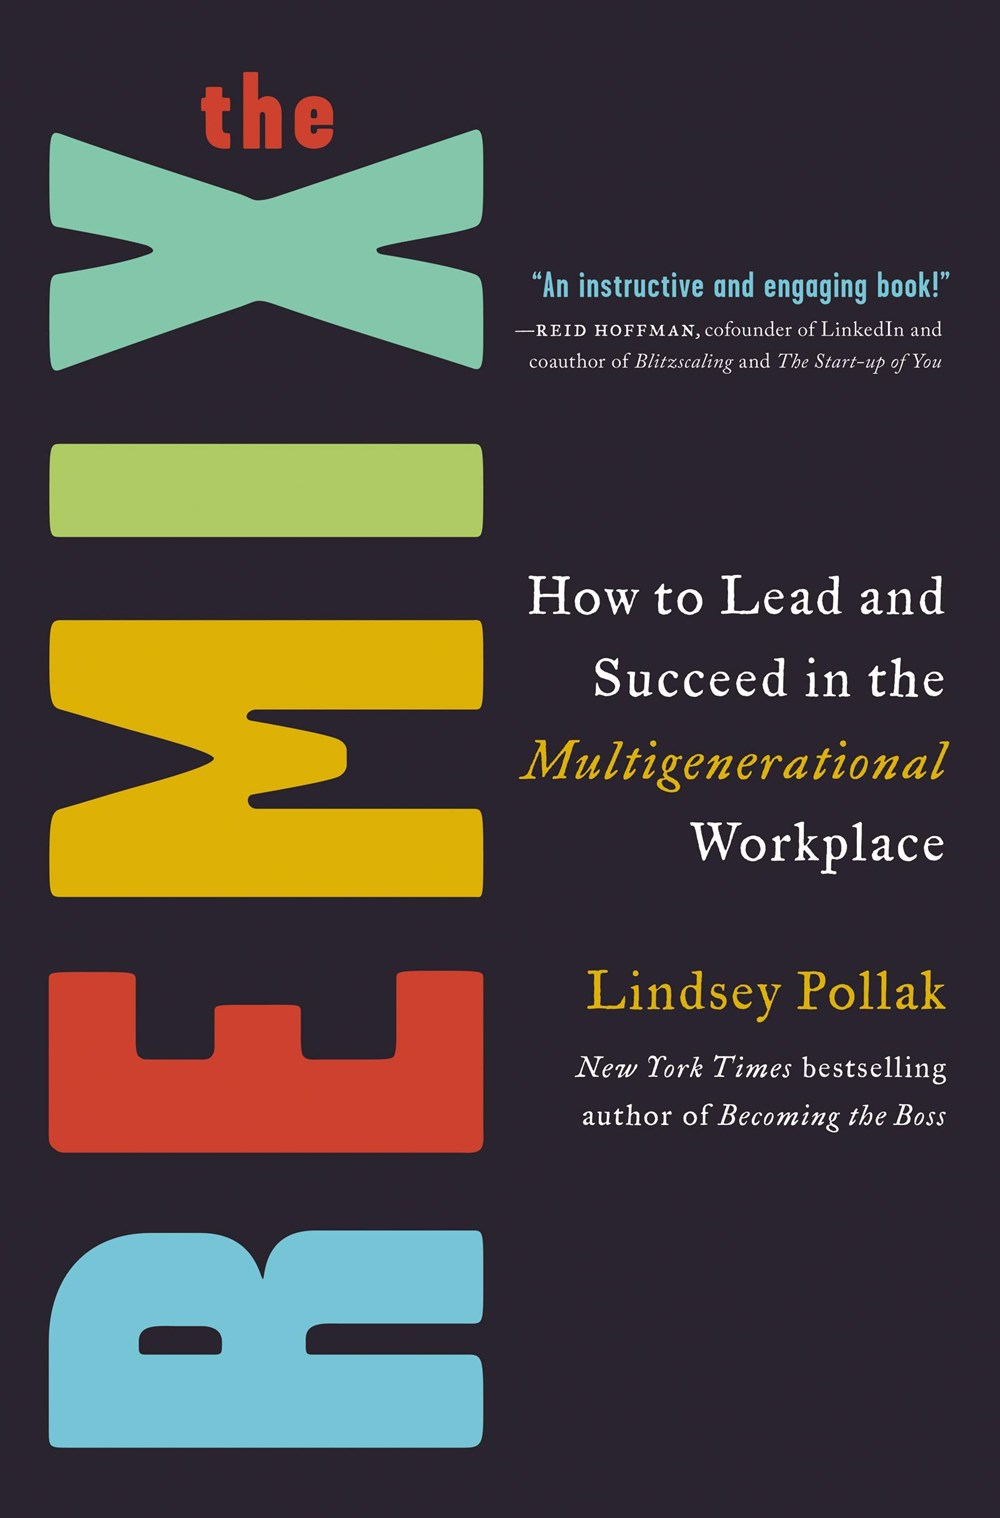 Remix How to Lead and Succeed in the Multigenerational Workplace